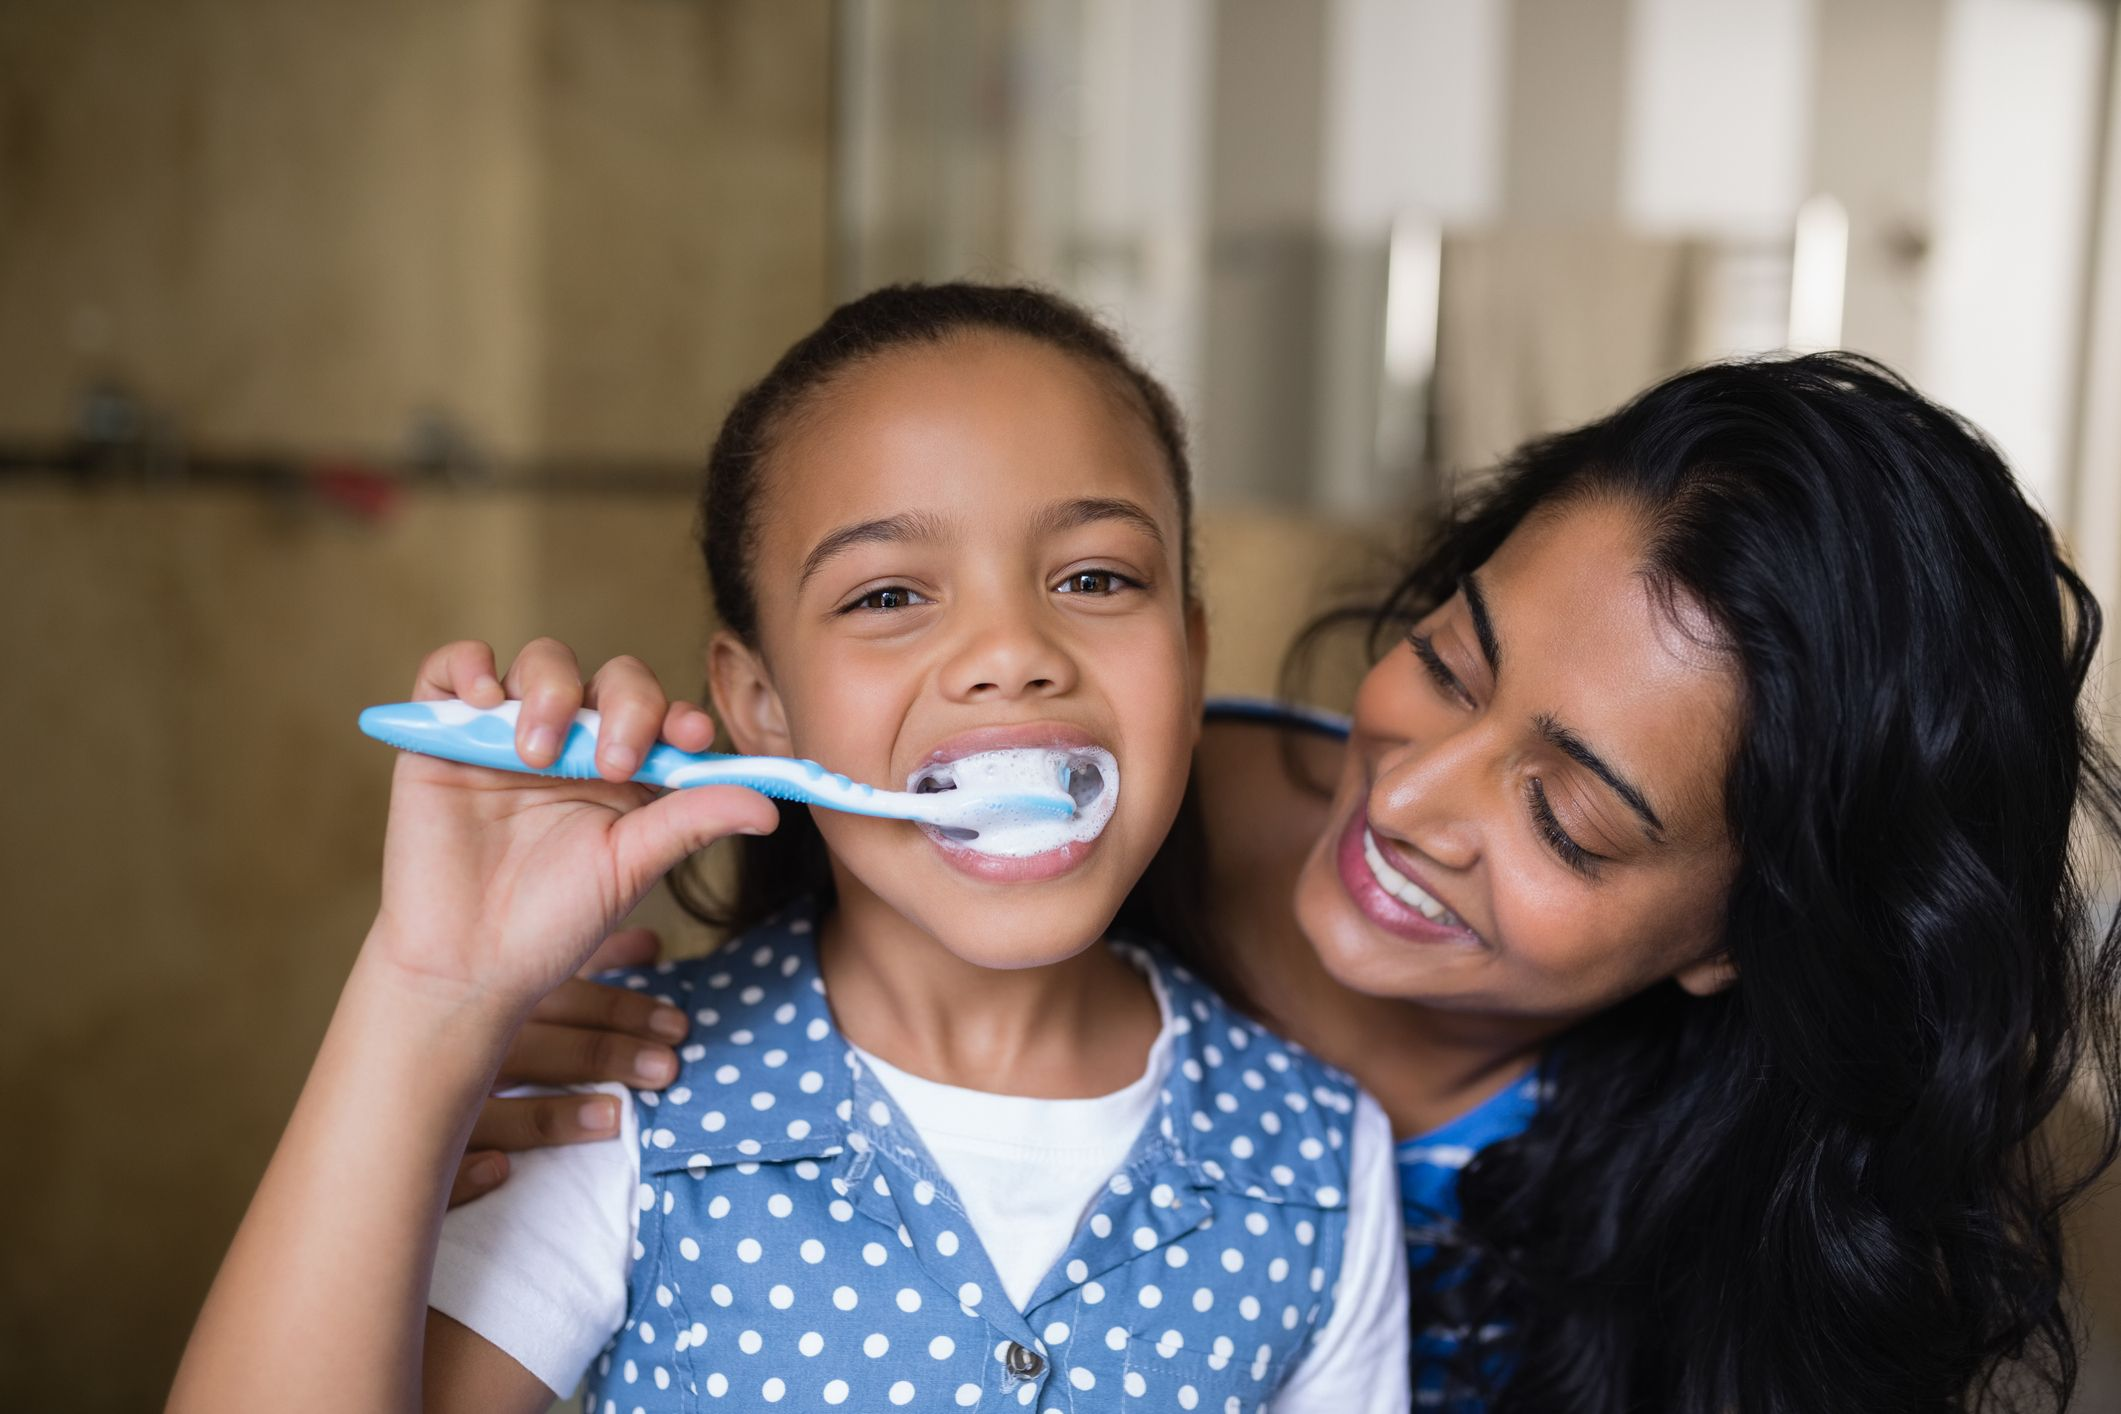 tooth brush health stock getty